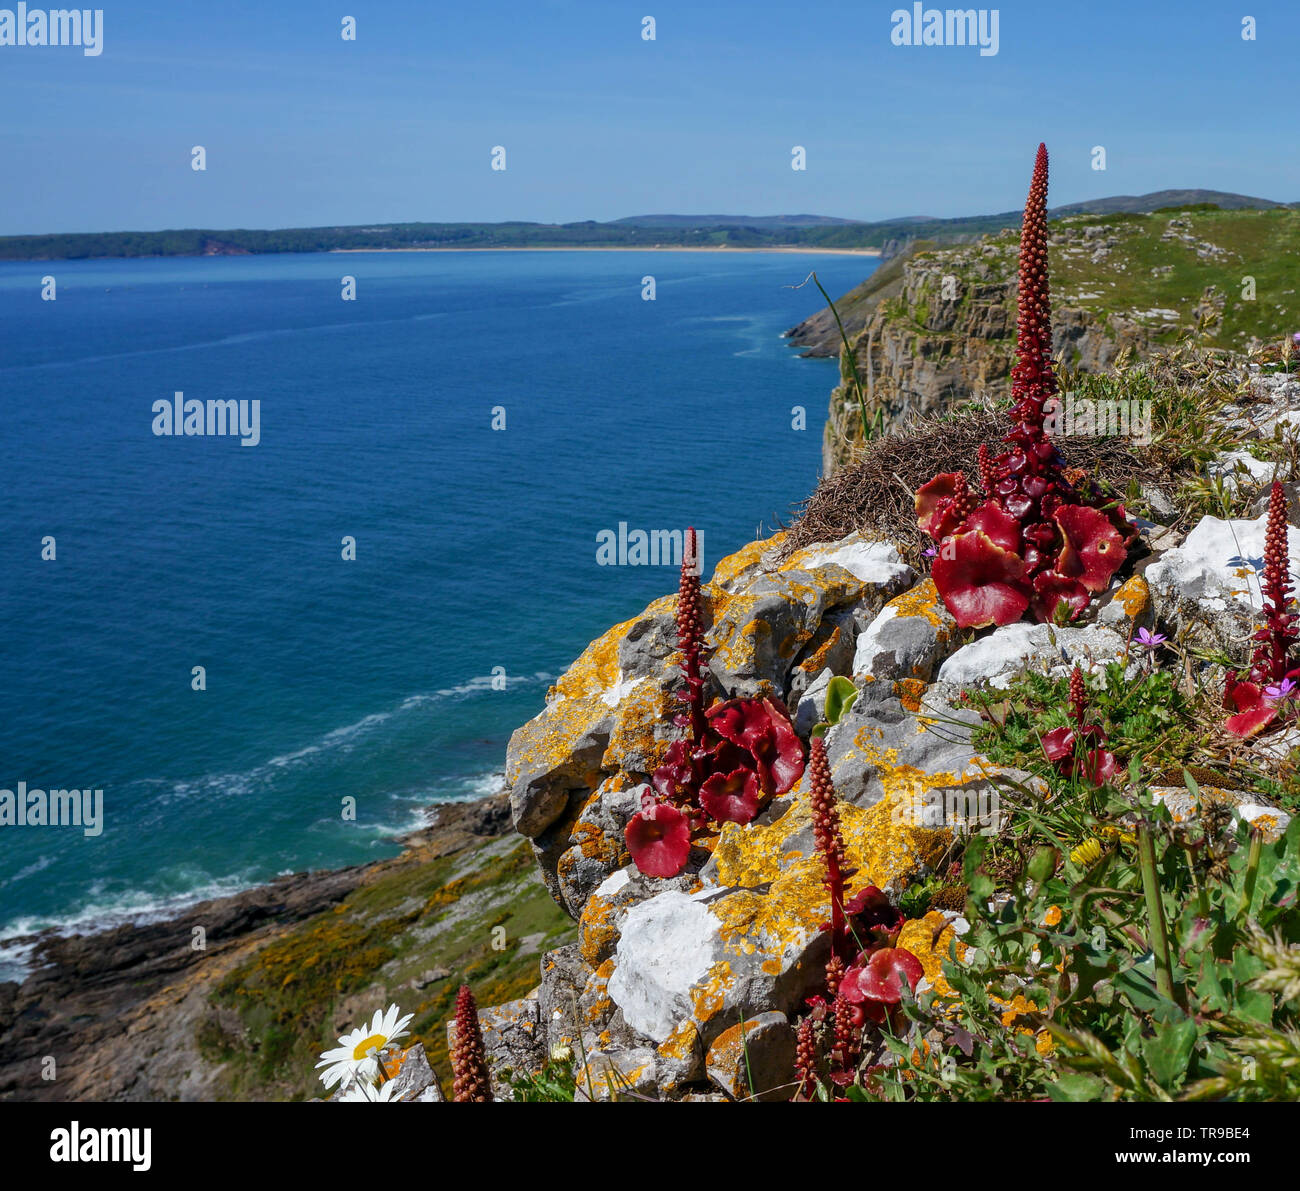 A seascape with an unusual  red plant in the foreground, Wales Stock Photo